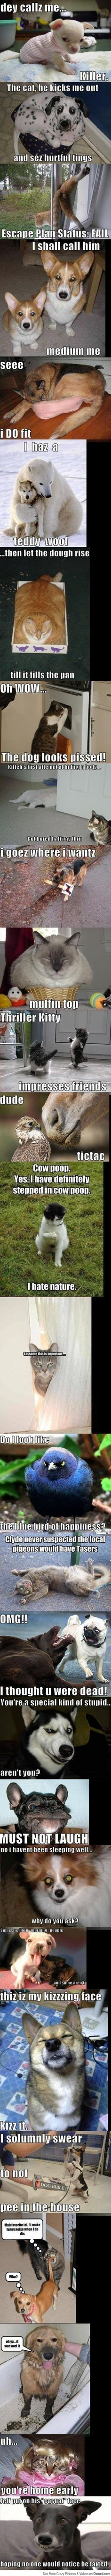 Funny Animal Memes Compilation